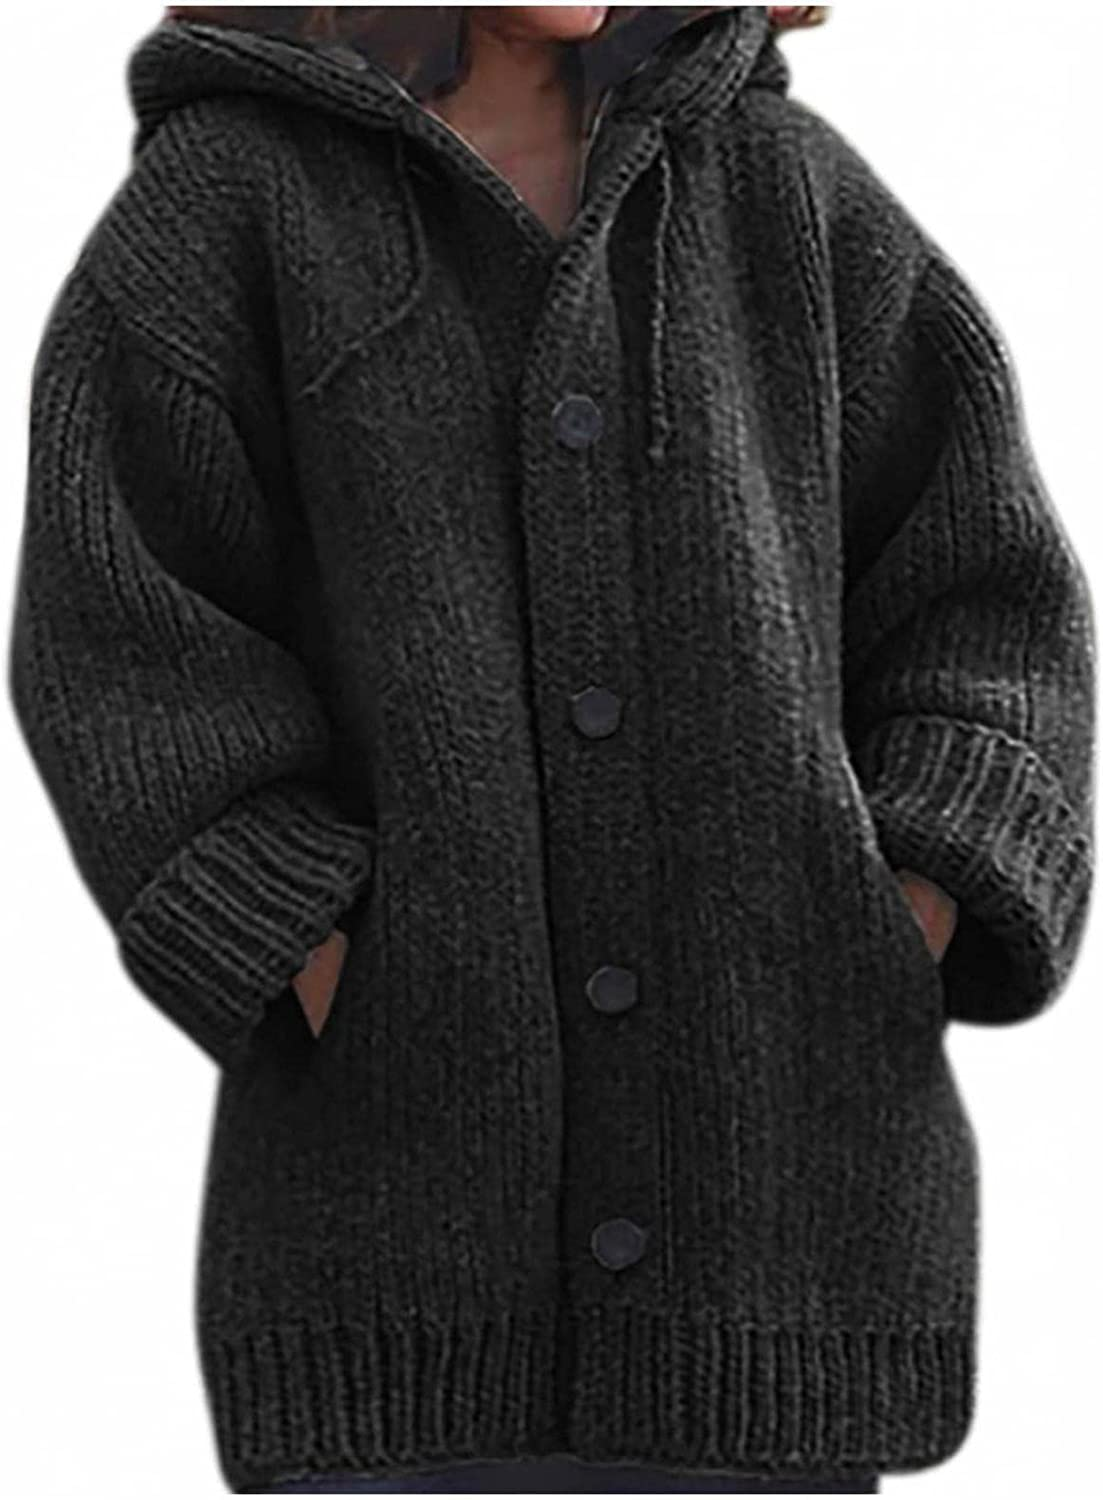 Plus Size Tops for Women Oversized Knitted Sweater Full Button Down Coat Fluffy Warm Hoodies Winter Long Sleeve